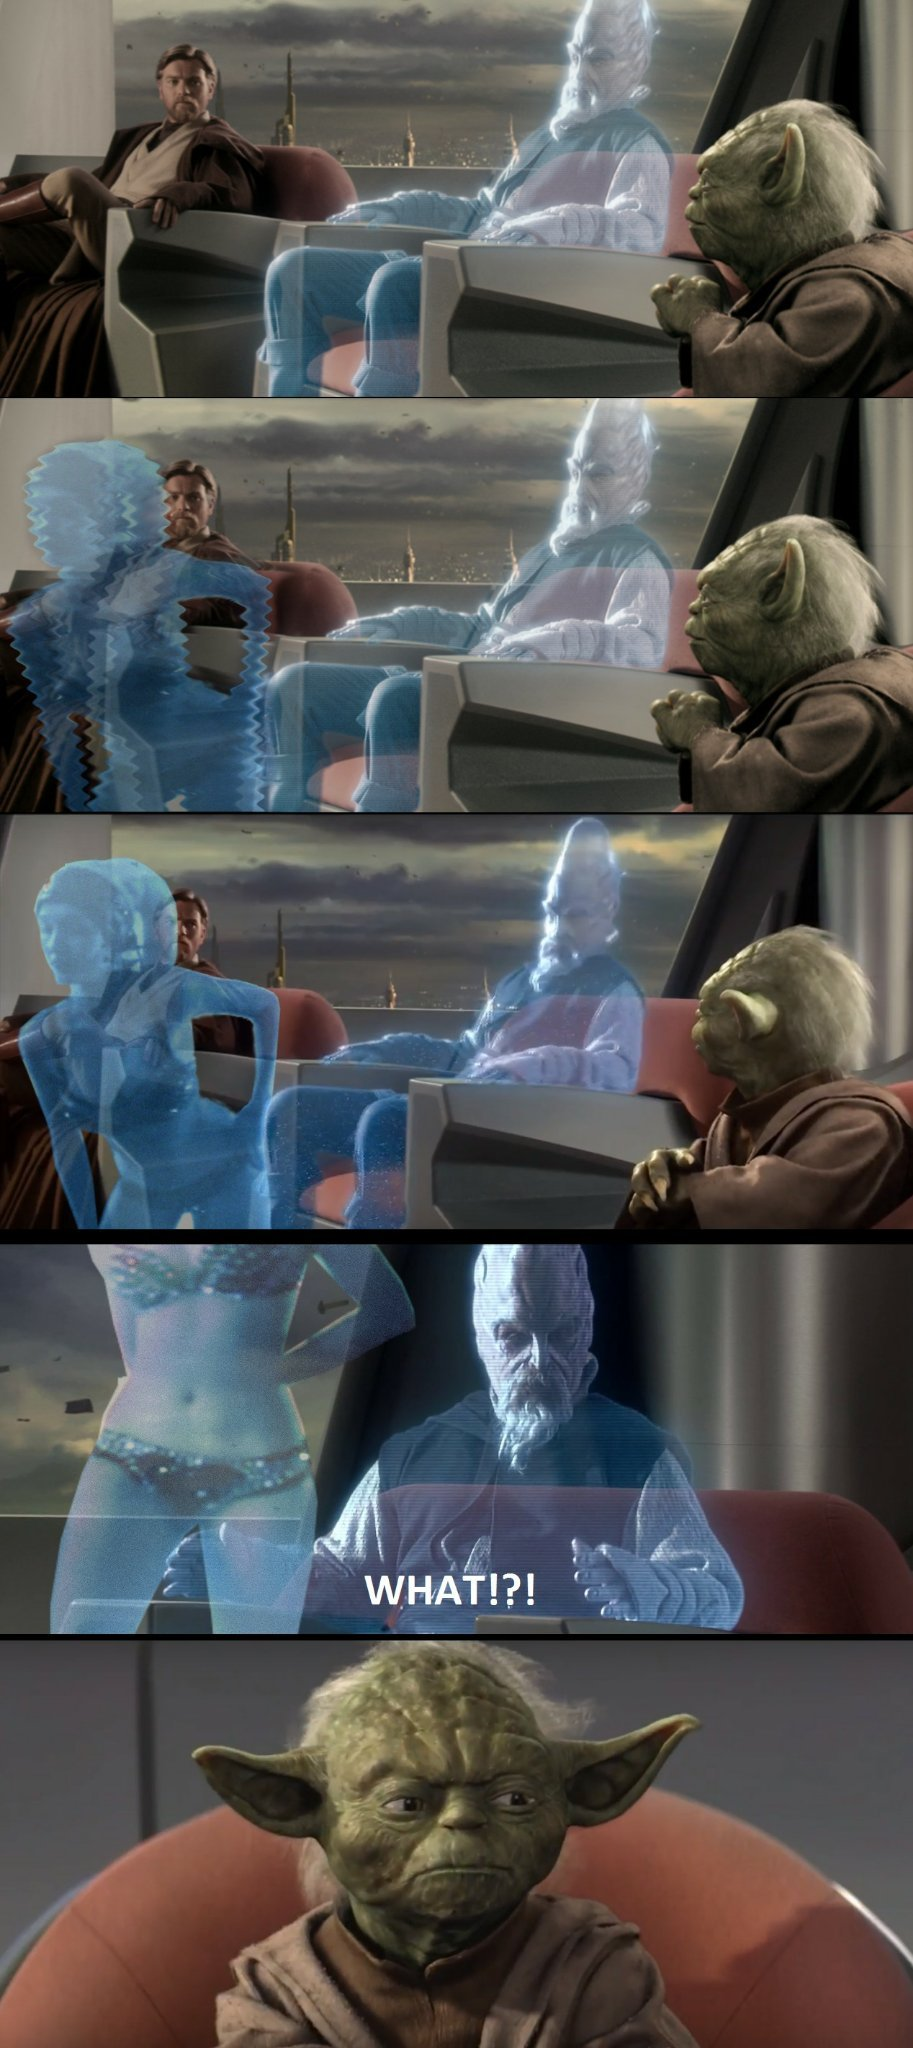 A fine addition to my collection - meme